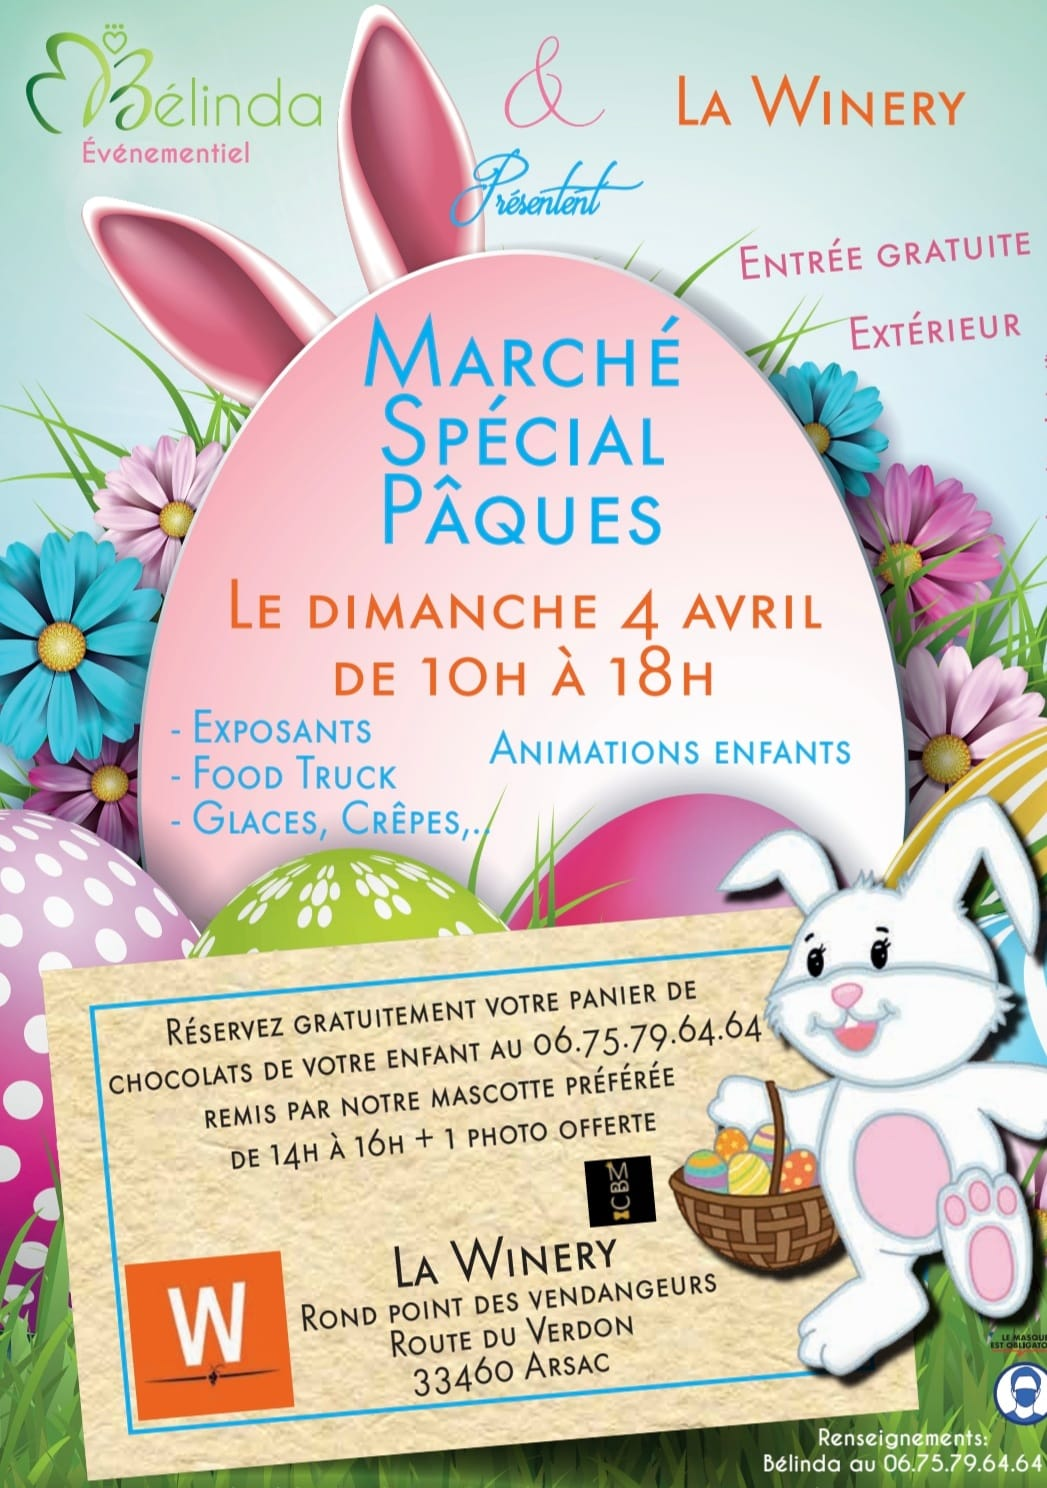 https://the-place-to-be.fr/wp-content/uploads/2021/03/Marche-Special-Paques-arsac-2021-659c2939.jpg